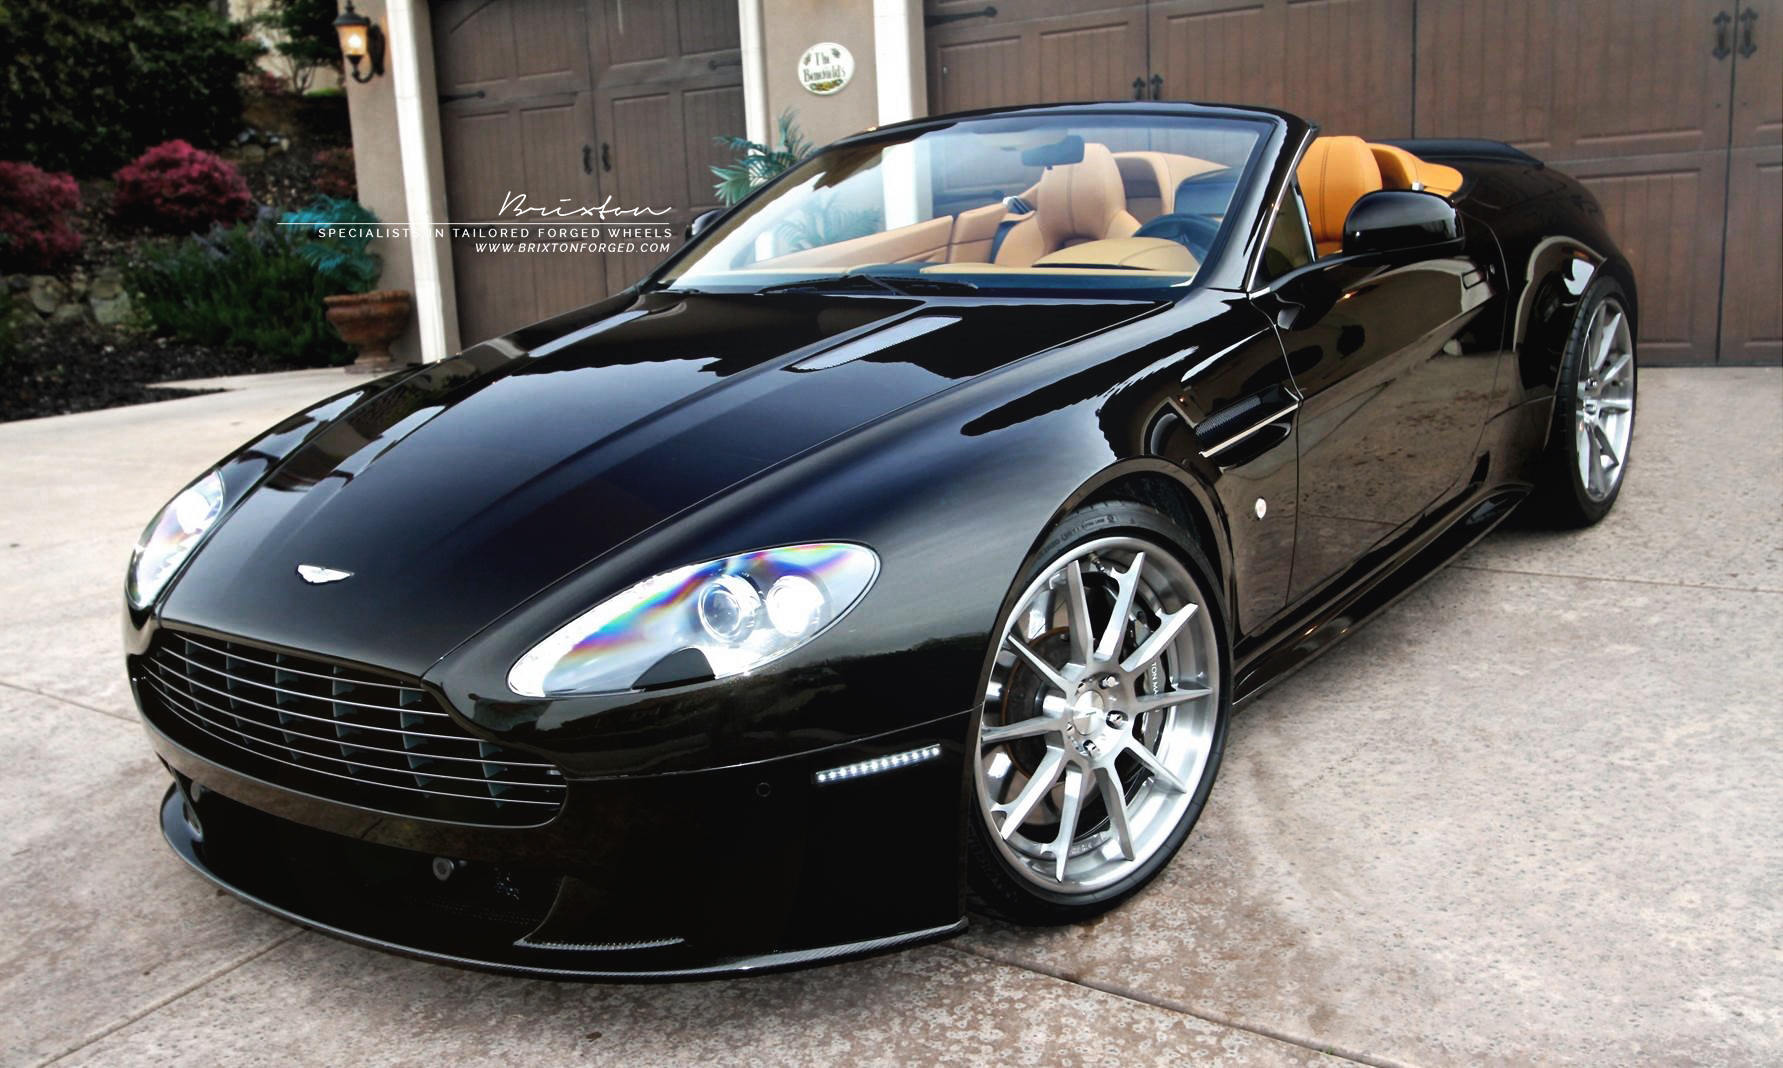 81584 Aston Martin V12 Vantage Wears Hre P101 further 2016 Proace verso additionally Nsx 2017 moreover Aston Martin One 77 further Aston Martin Virage. on aston martin vantage dimensions